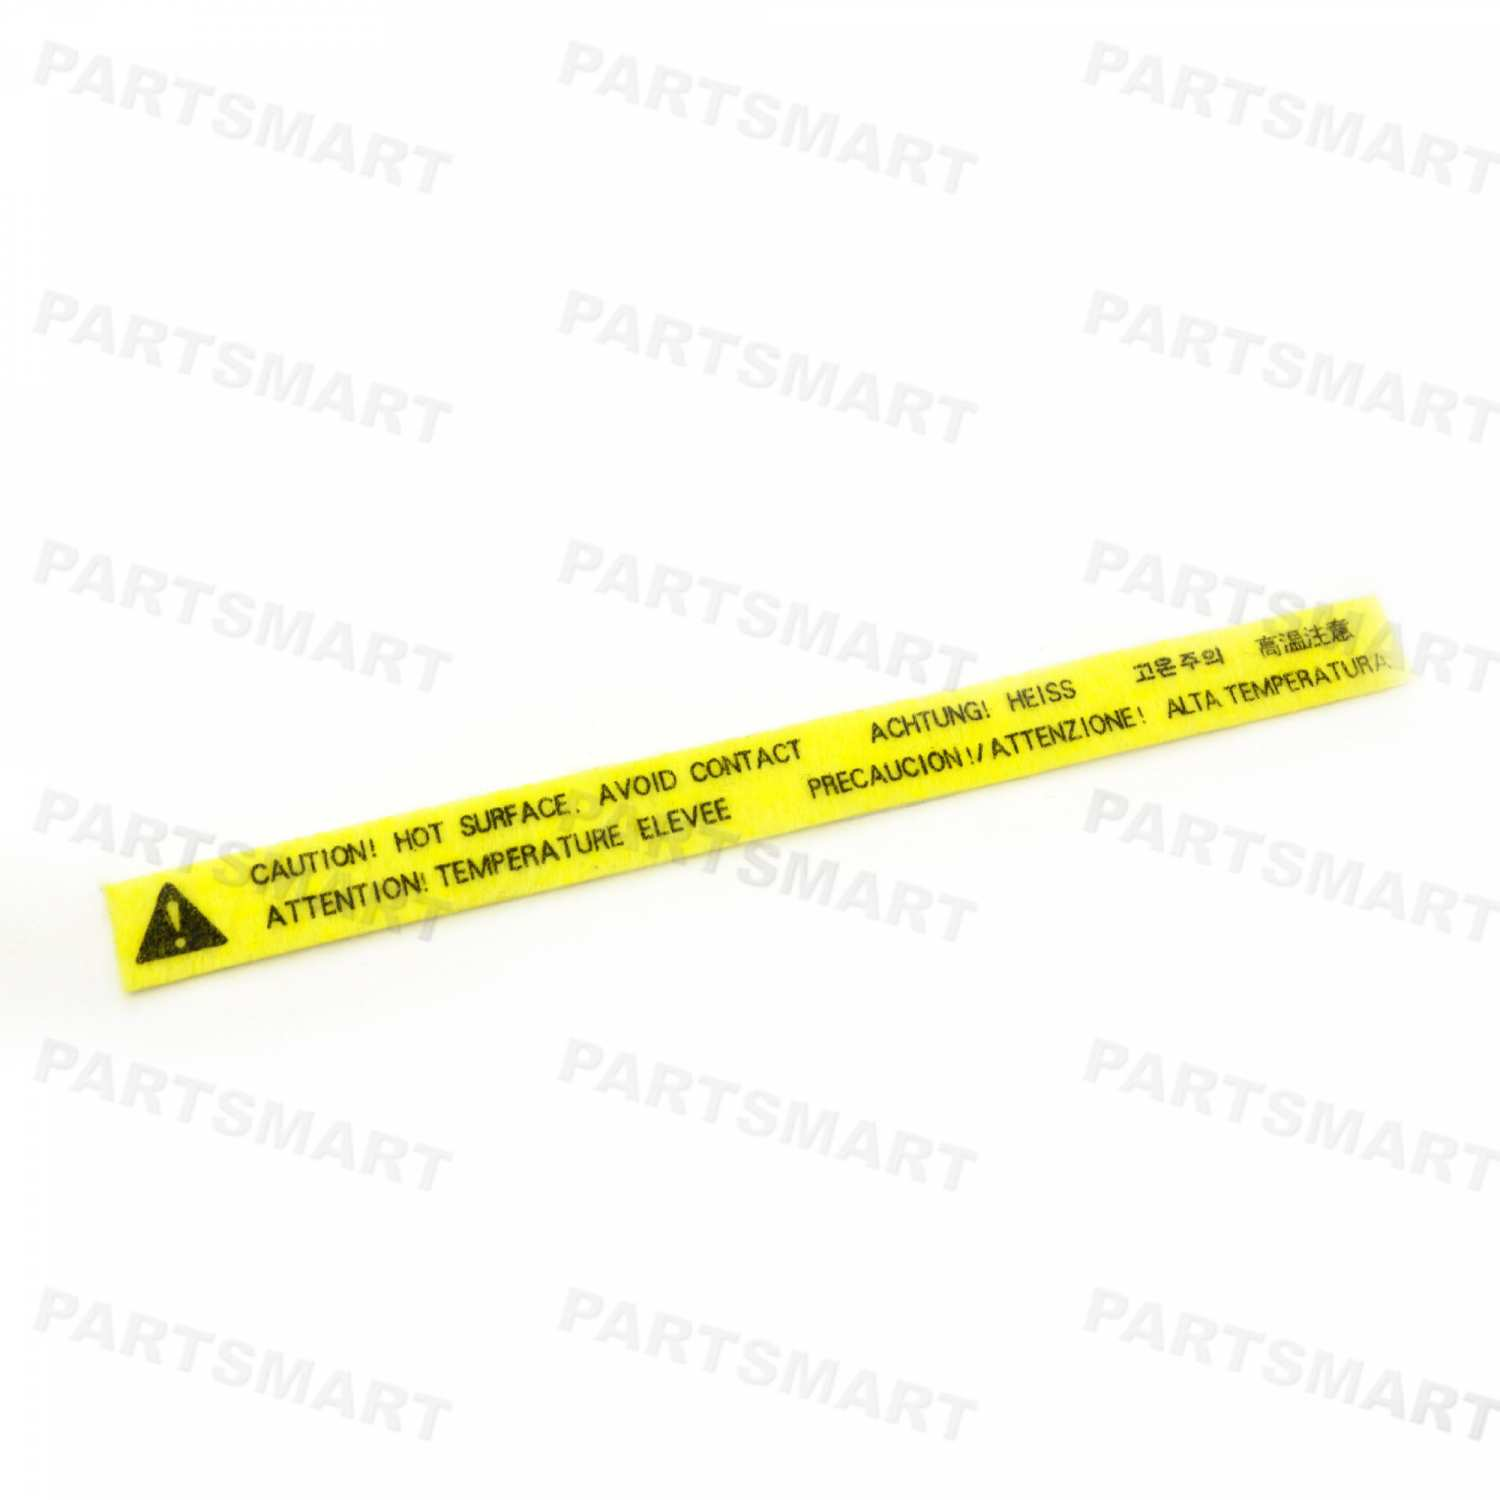 RS5-8380-000 Fuser Caution Label for HP LaserJet 4, LaserJet 4+